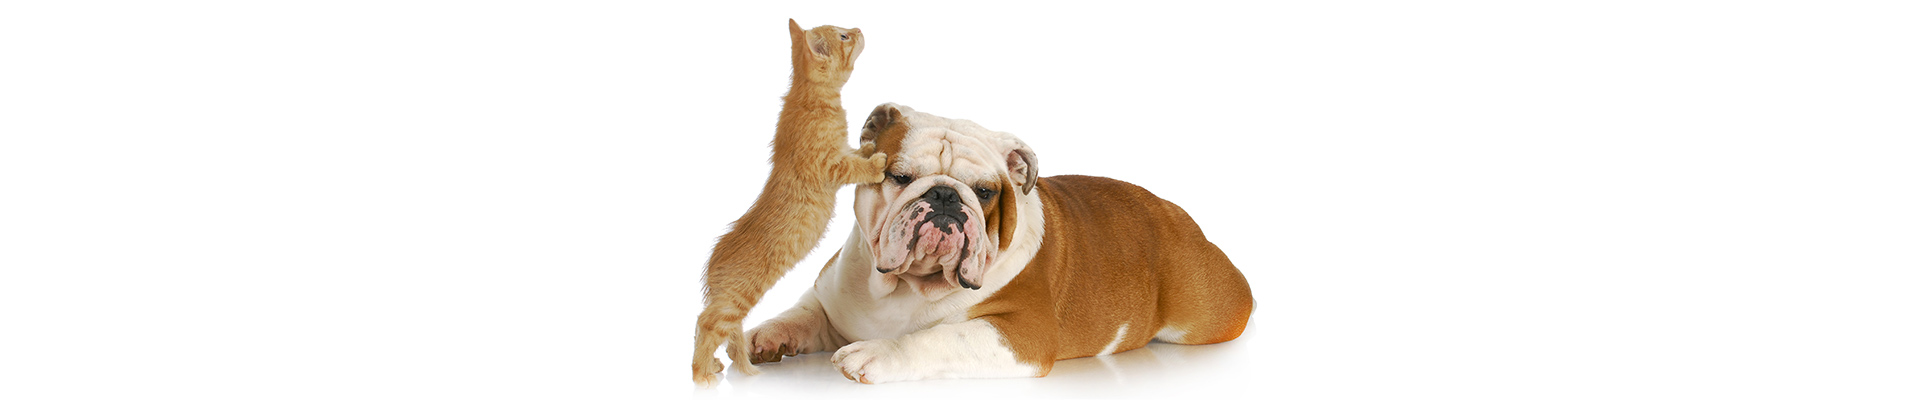 Kitten playing with unamused Bulldog